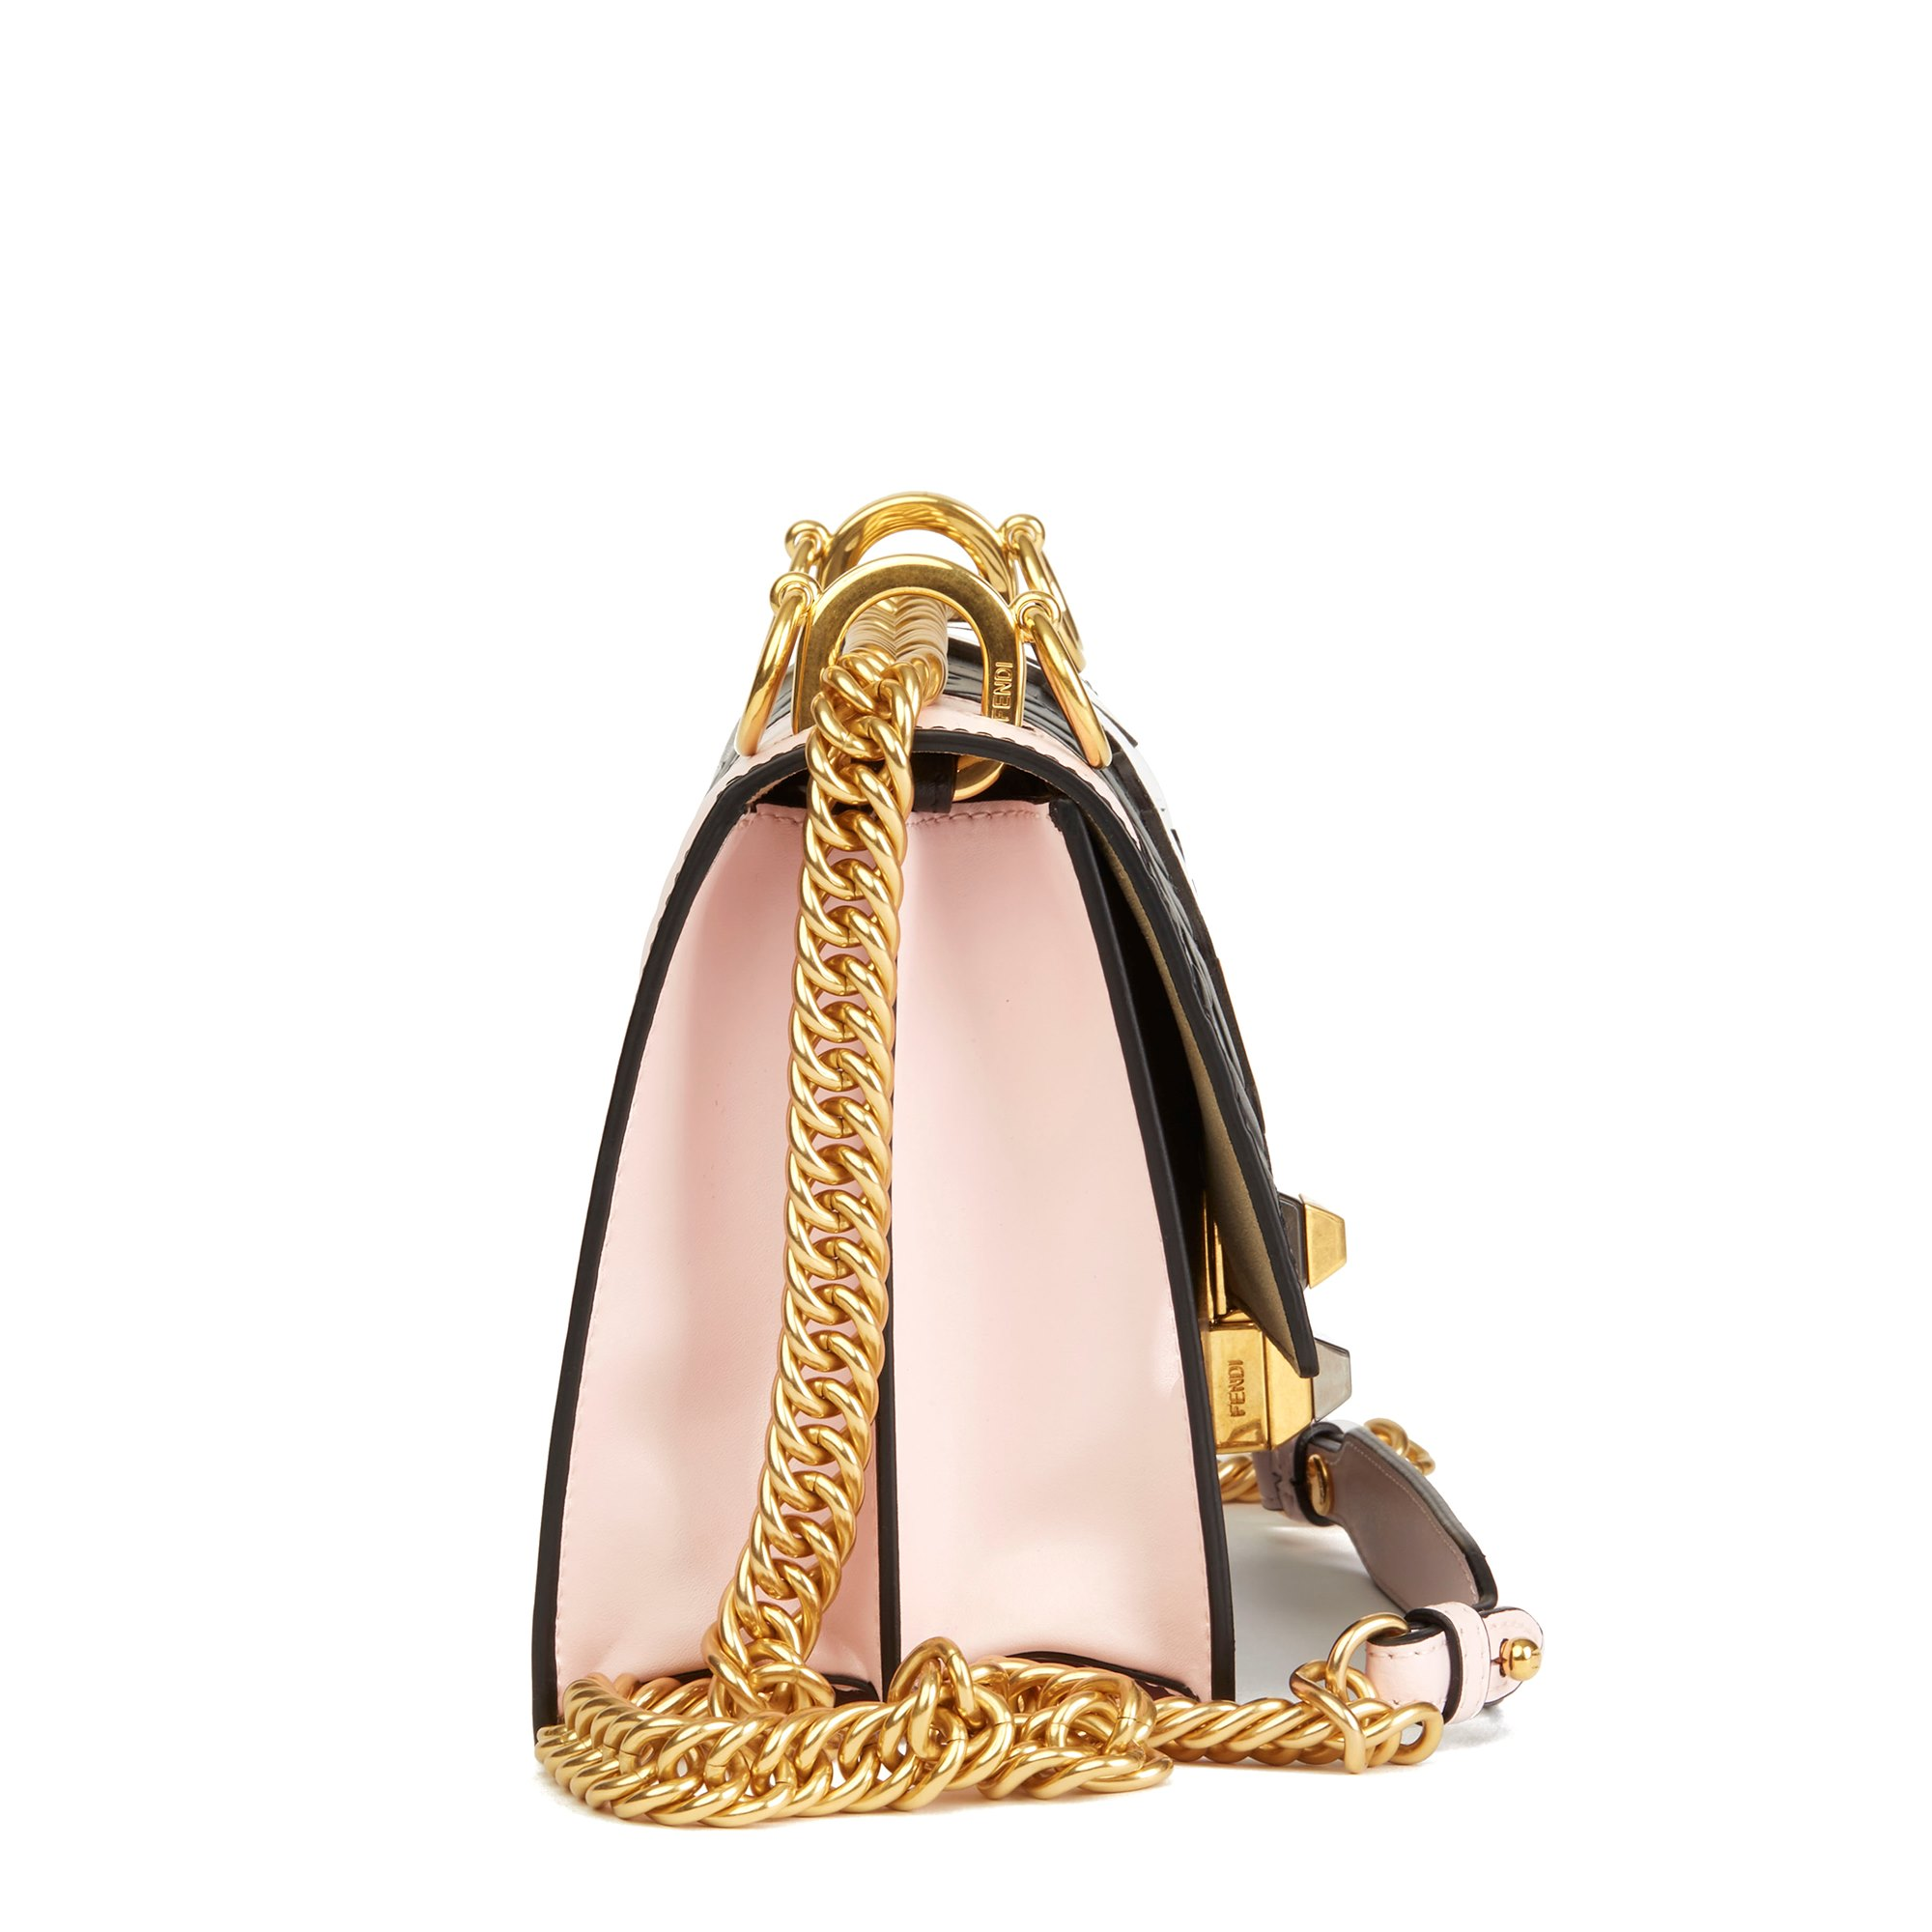 Fendi Multicolour Calfskin Leather Fendi Mania Mini Kan I